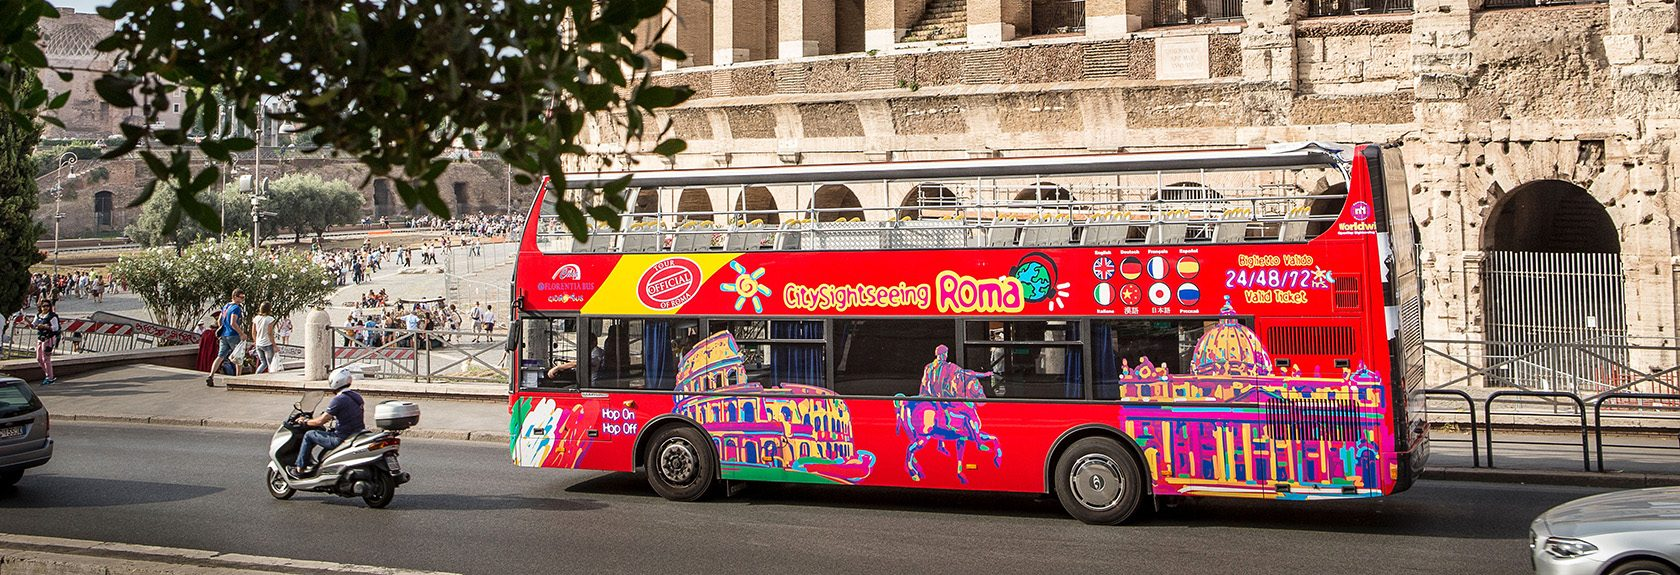 Hop-on Hop-off bussen Rome